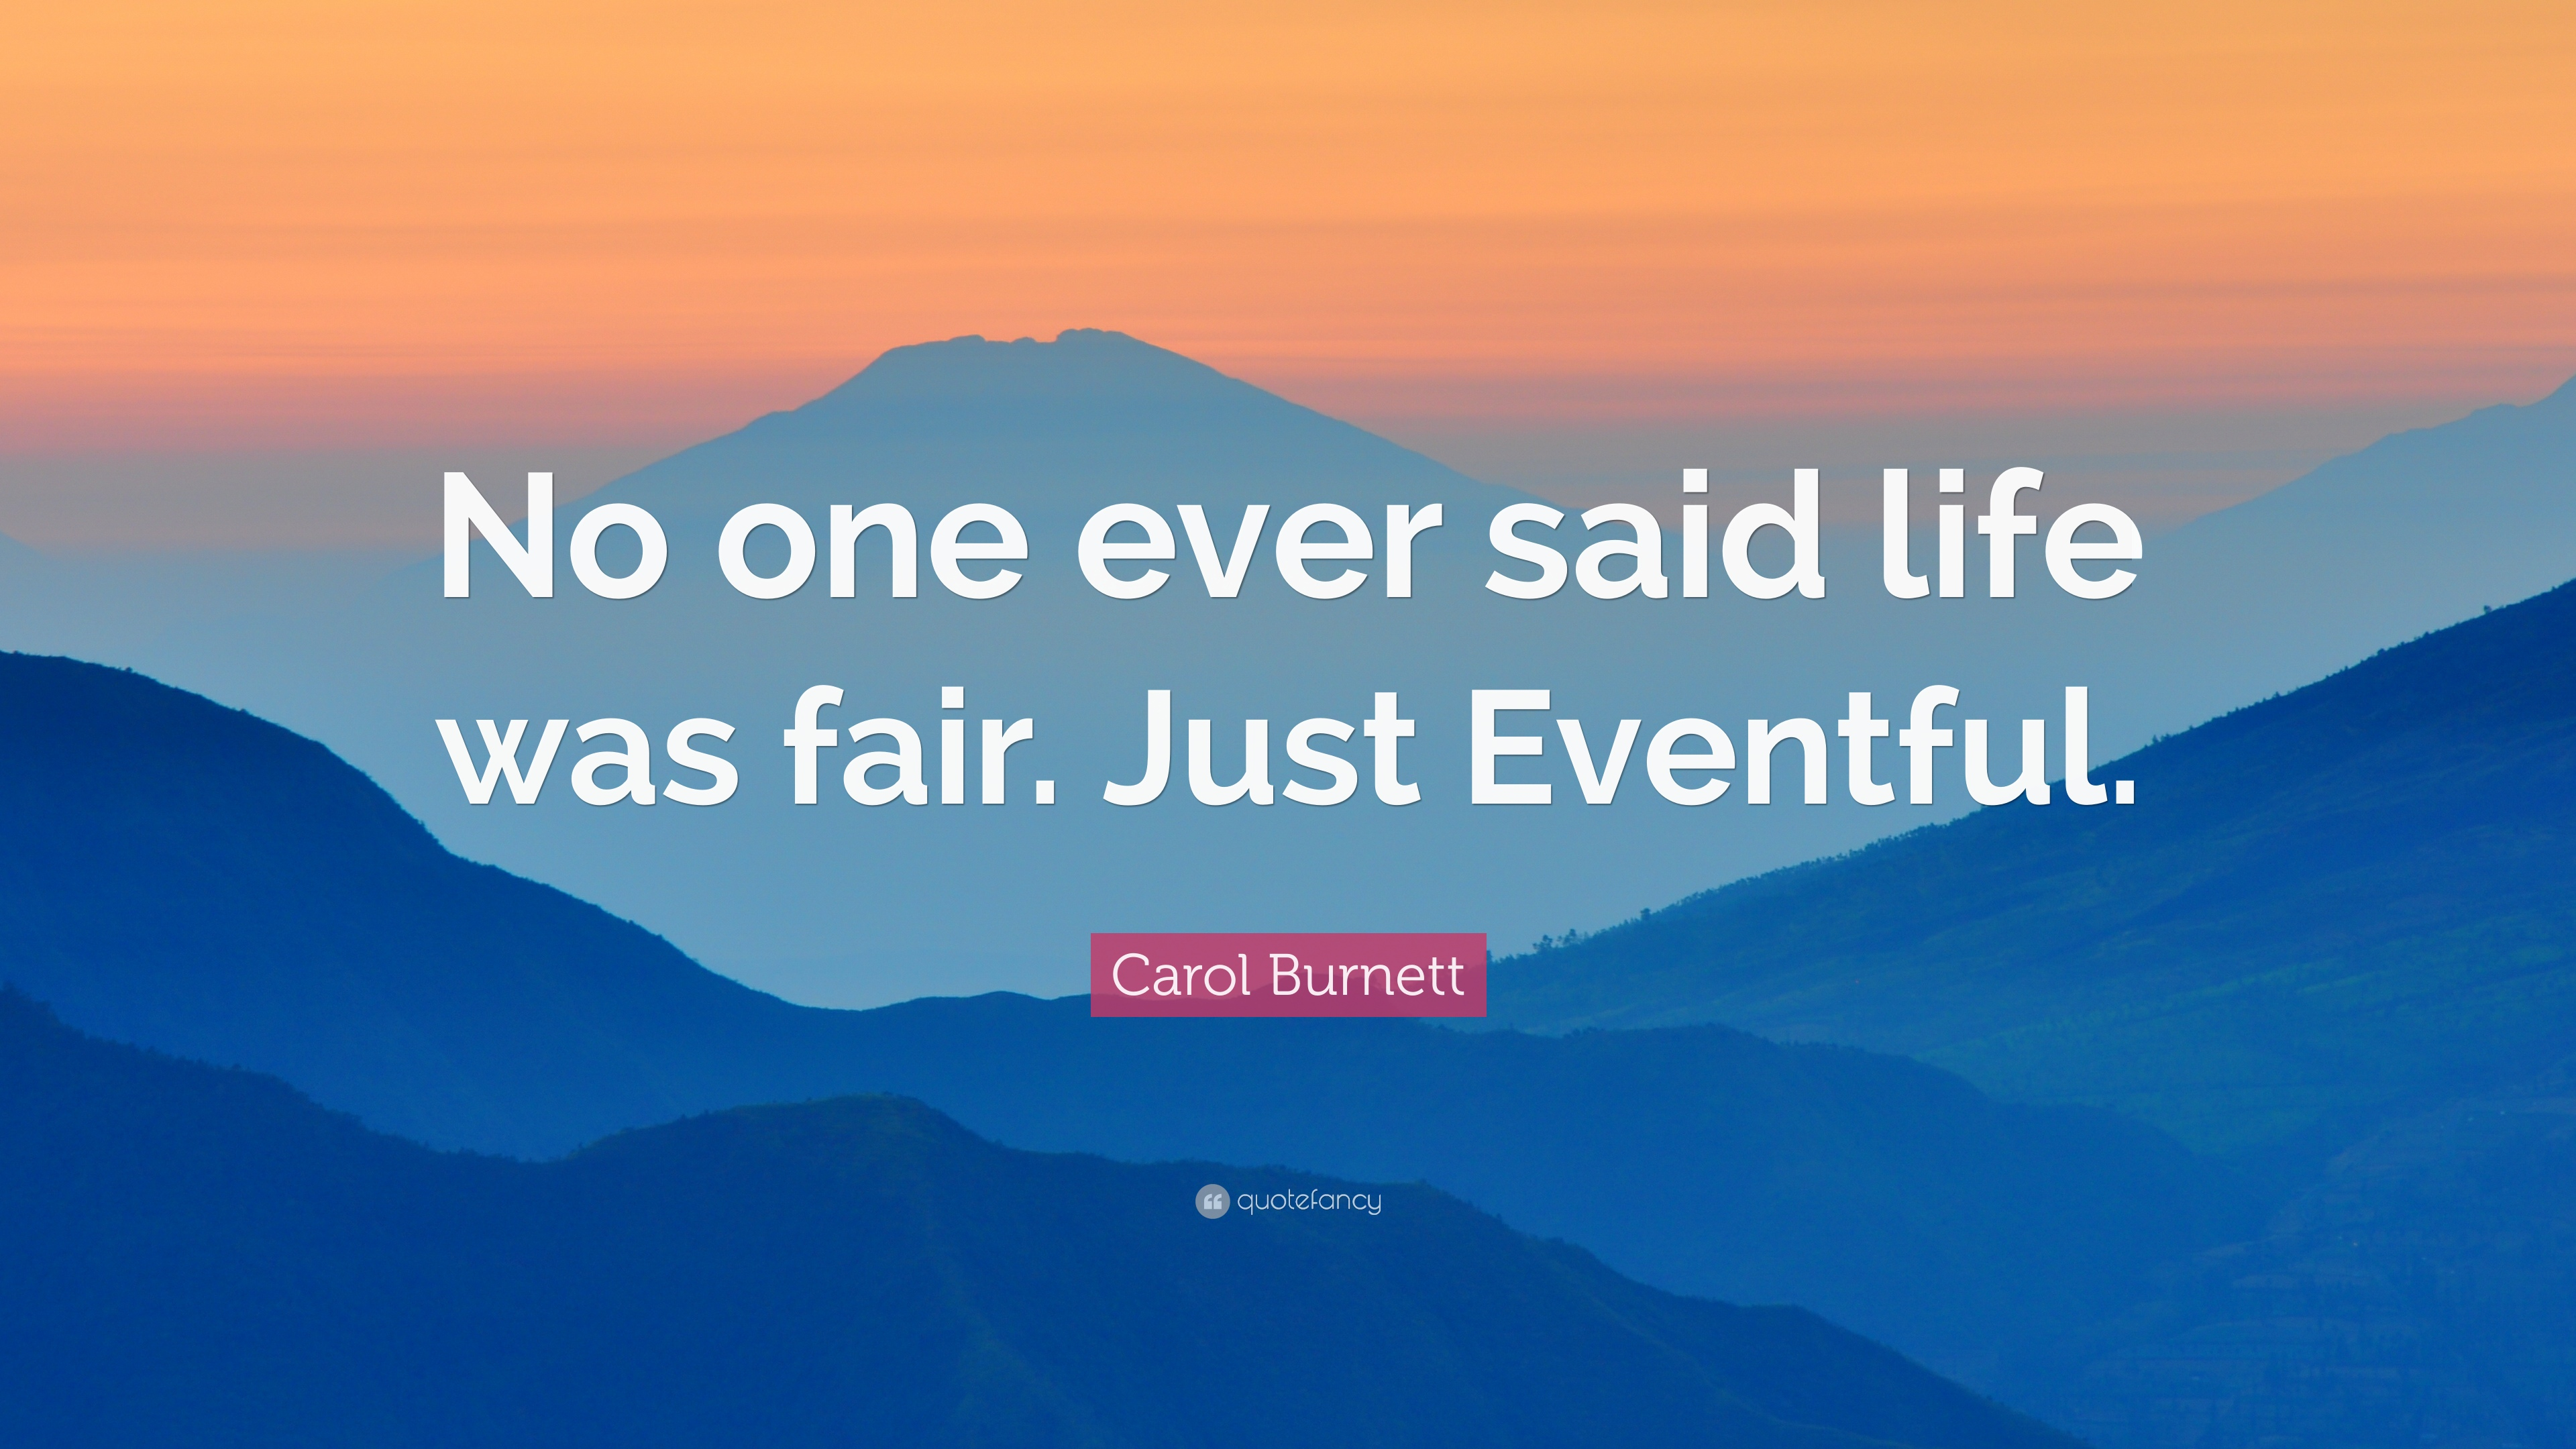 Carol Burnett Quote No One Ever Said Life Was Fair Just Eventful